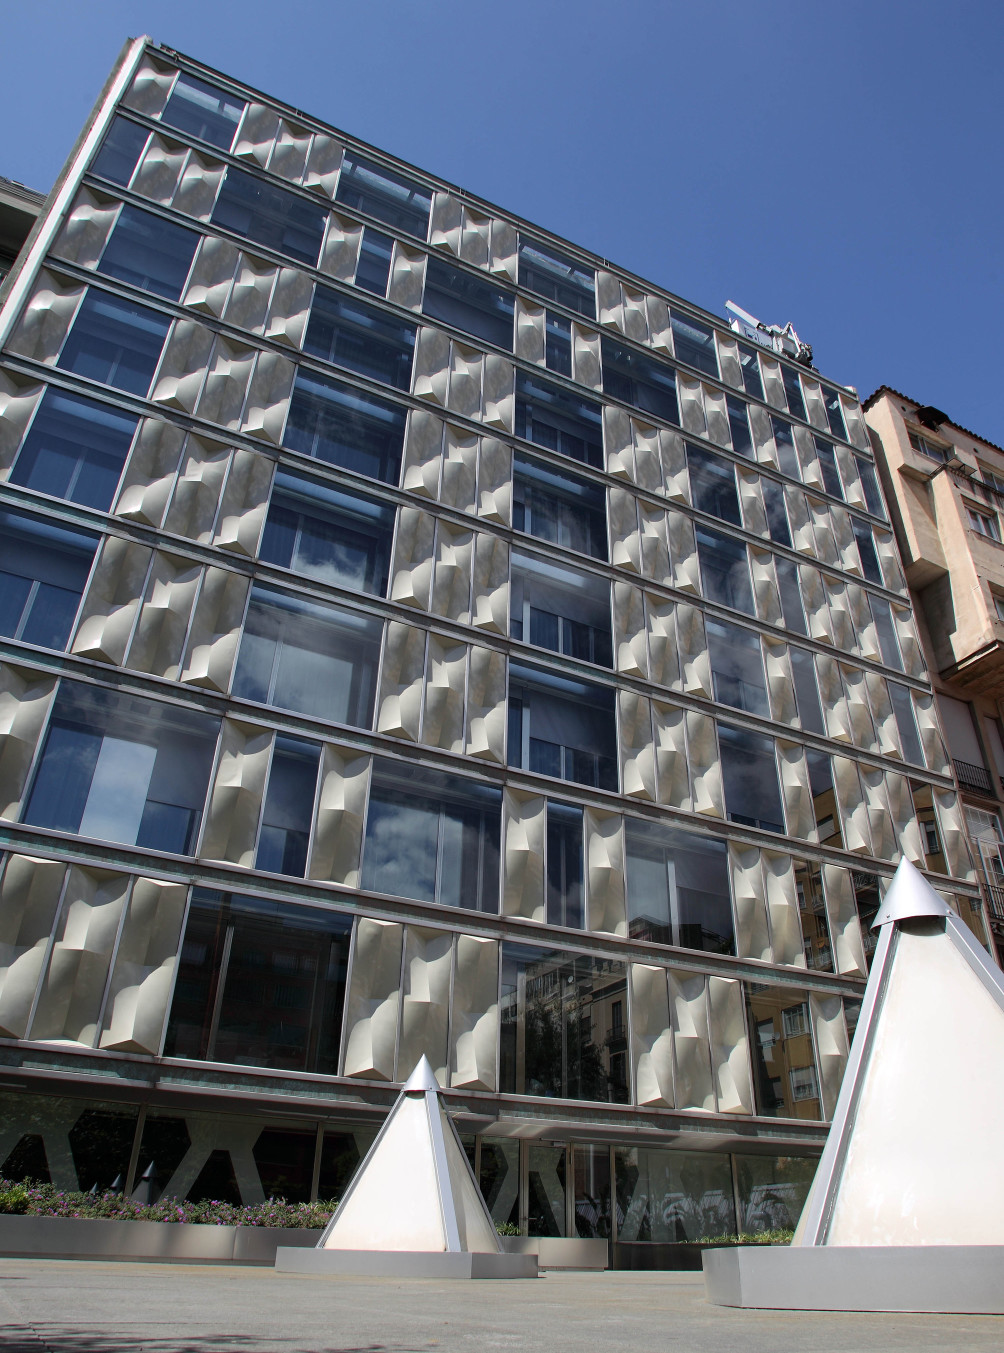 Hotel royal passeig de gracia desde 120 rumbo for Hotel gracia barcelona